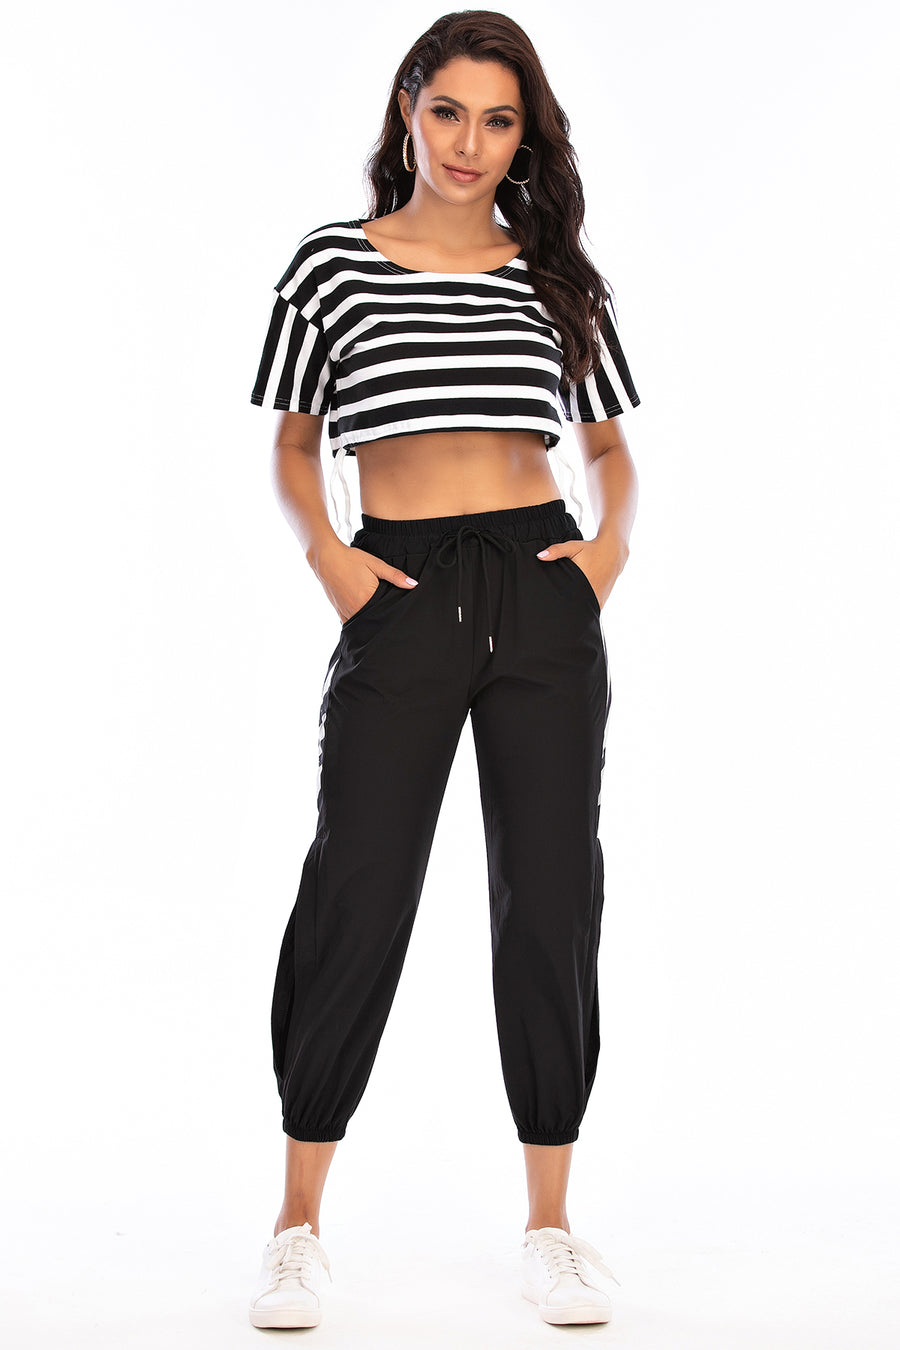 Mantra Pakistan Striped Crop Top | Western Wear